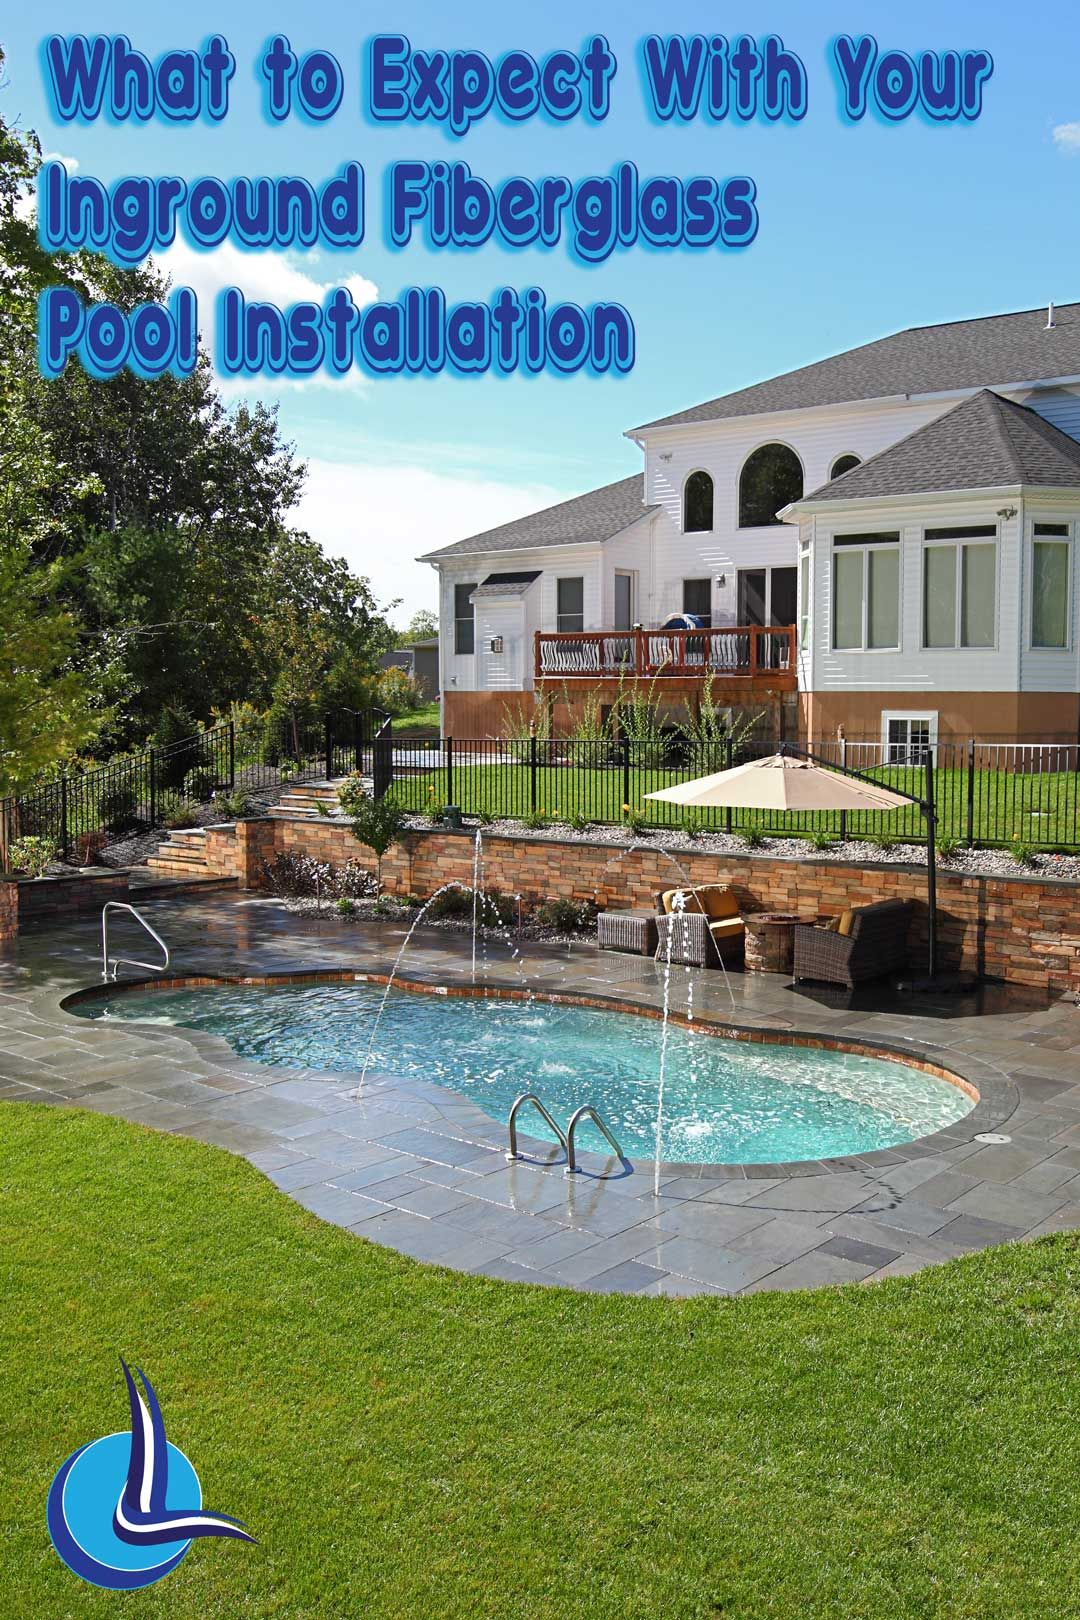 Are you planning on installing a fiberglass pool in your backyard ...